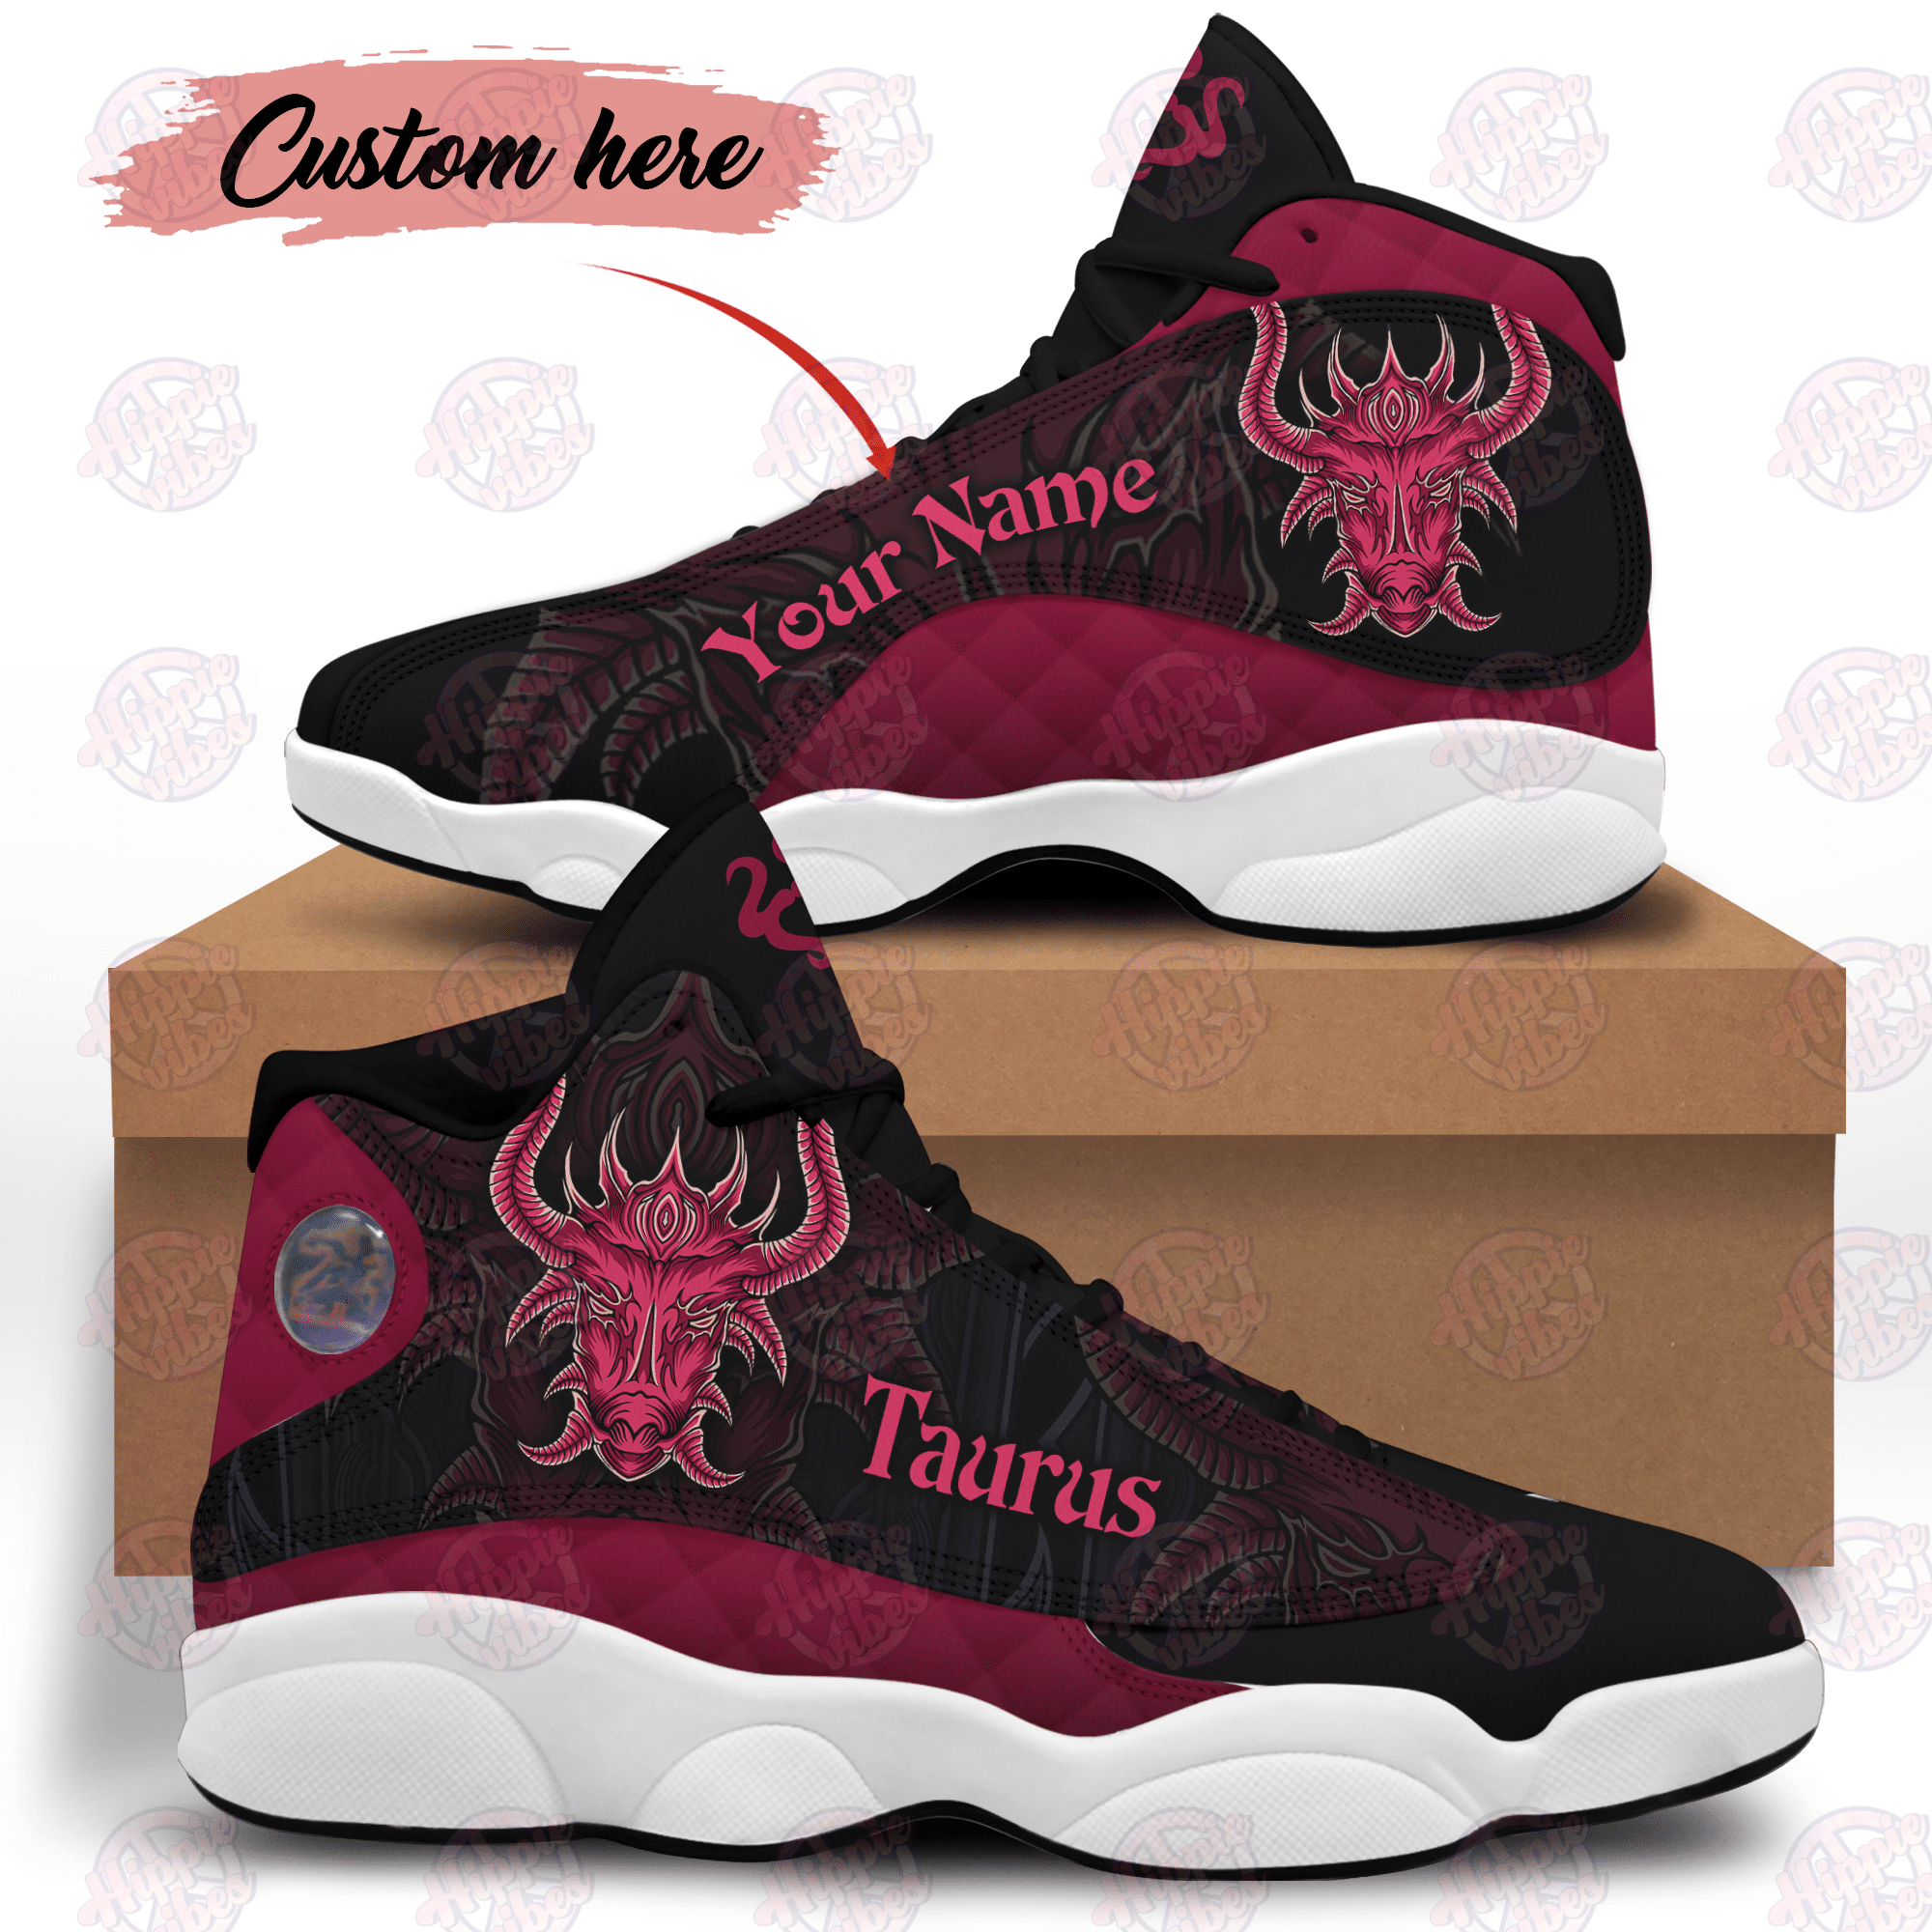 Taurus Customized JD13 Shoes HPV02